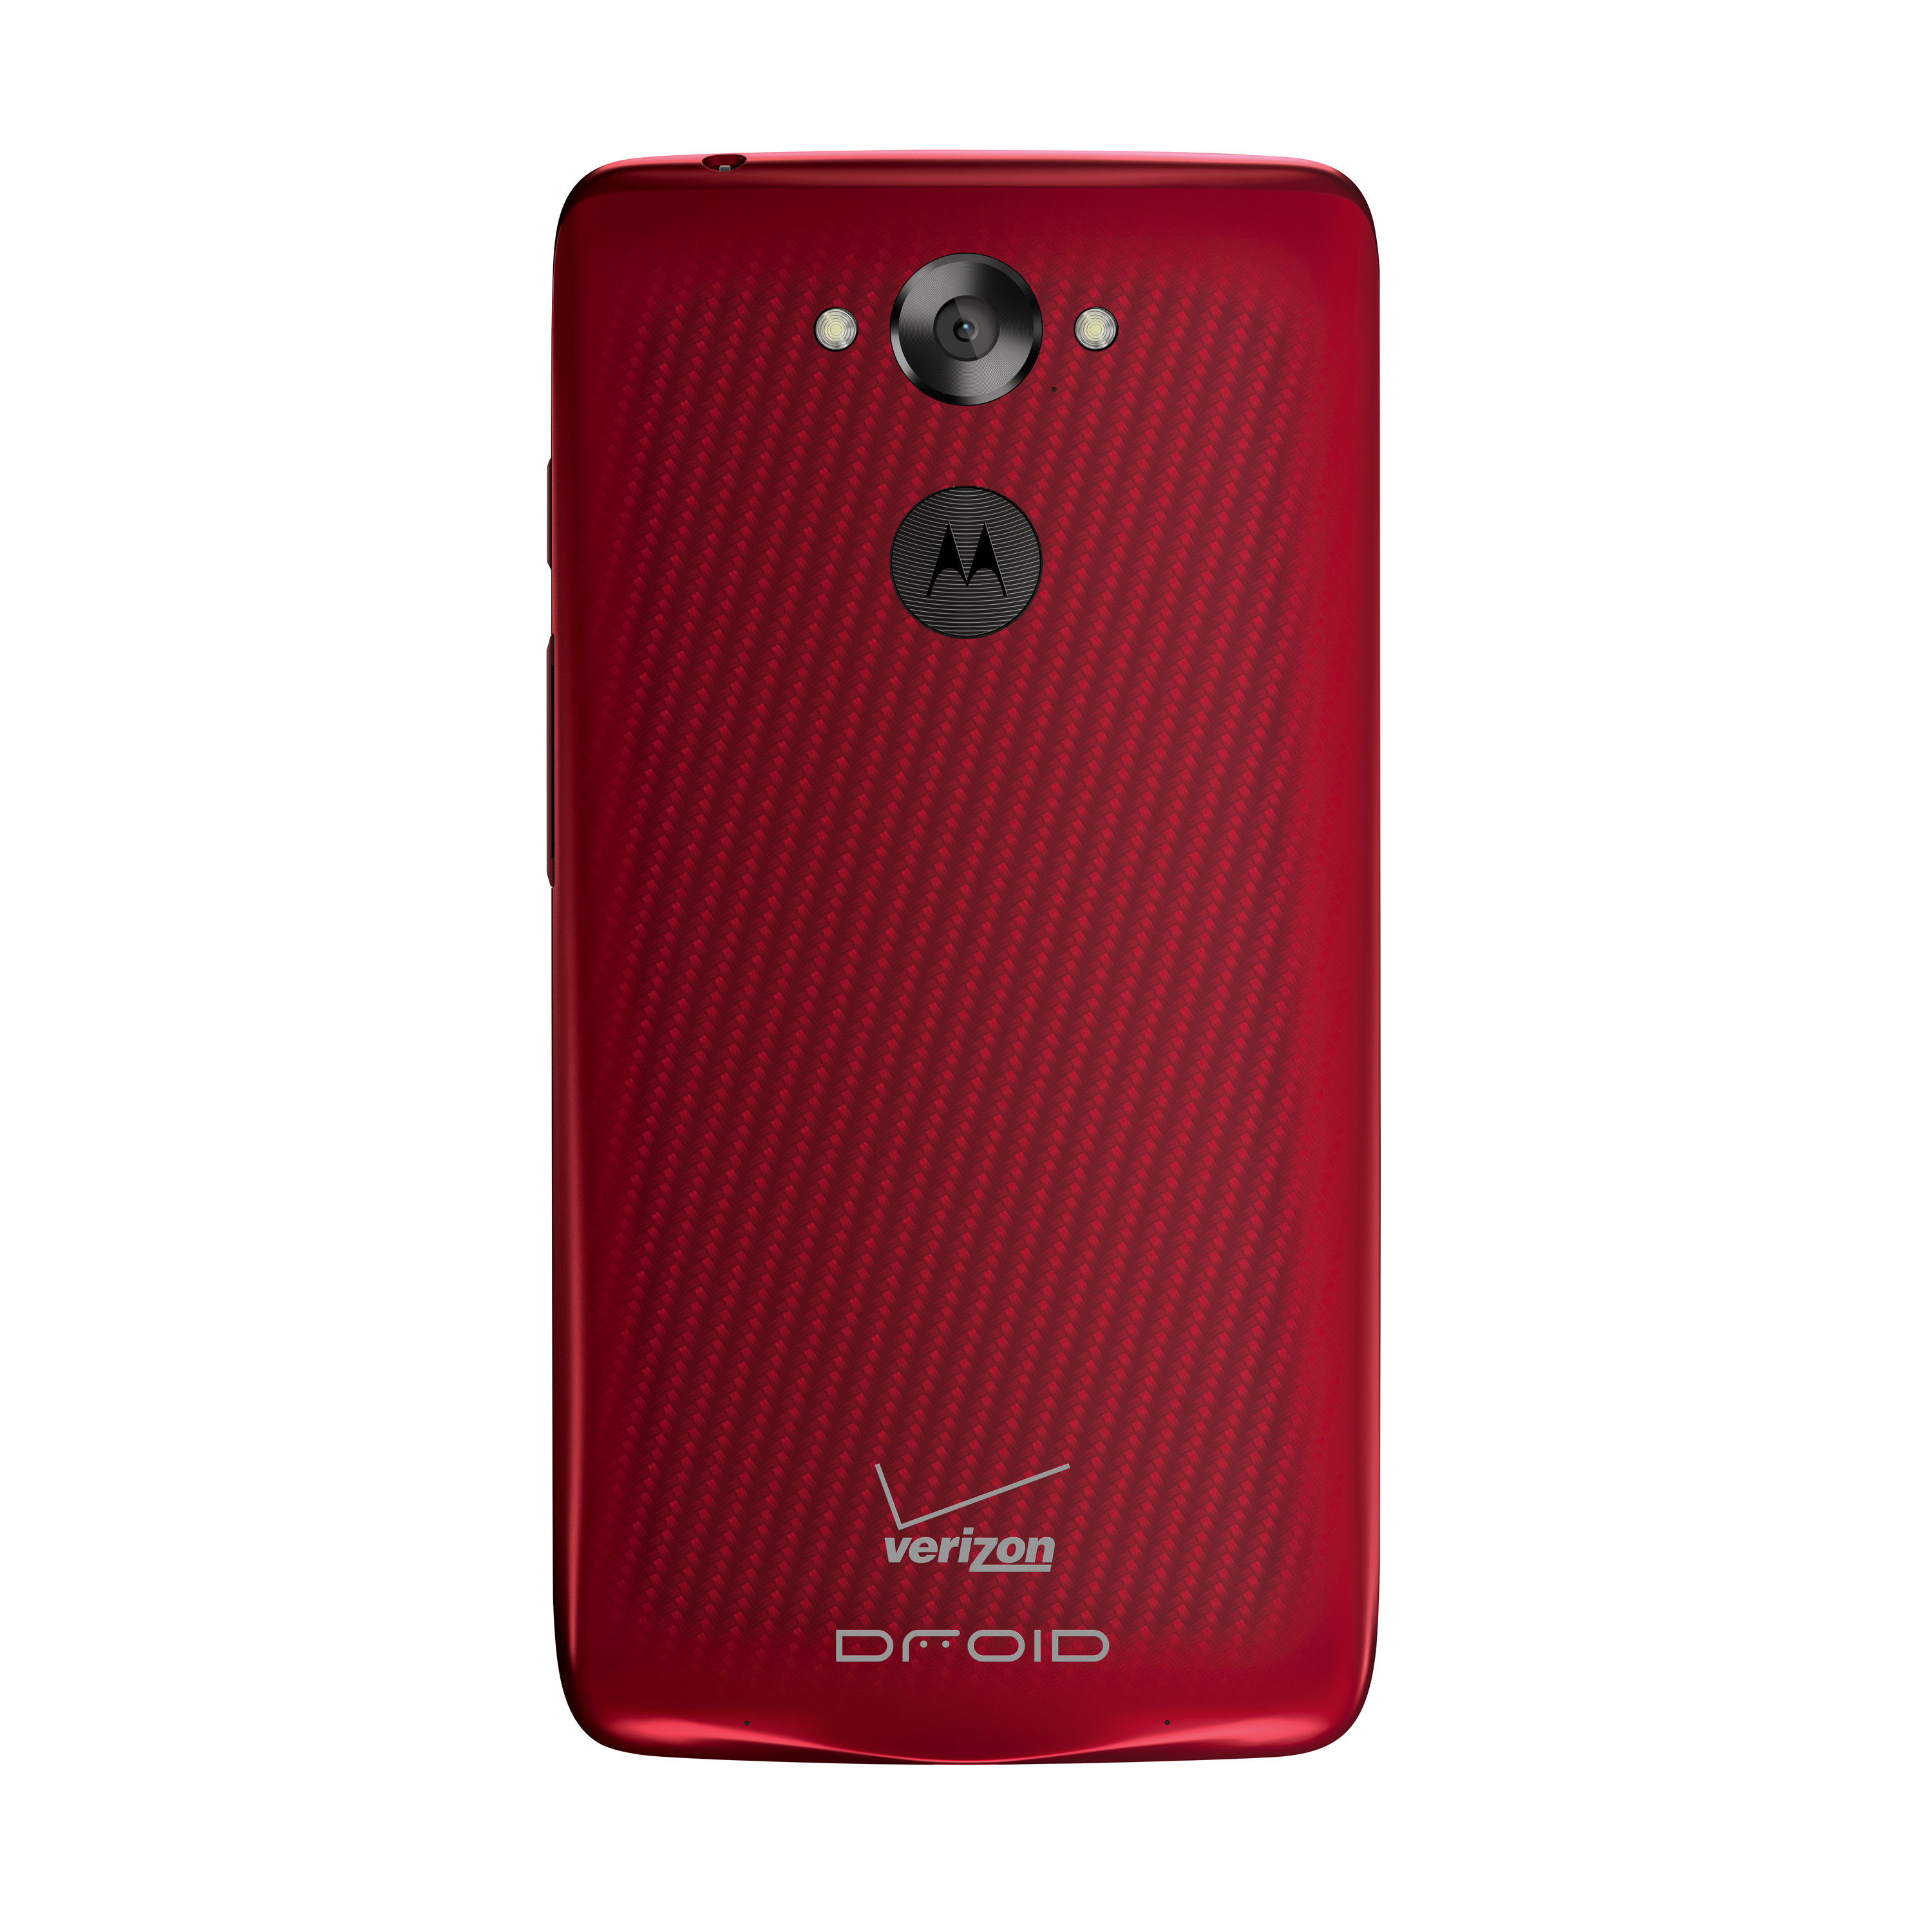 droid motorola red. on sale droid motorola red o